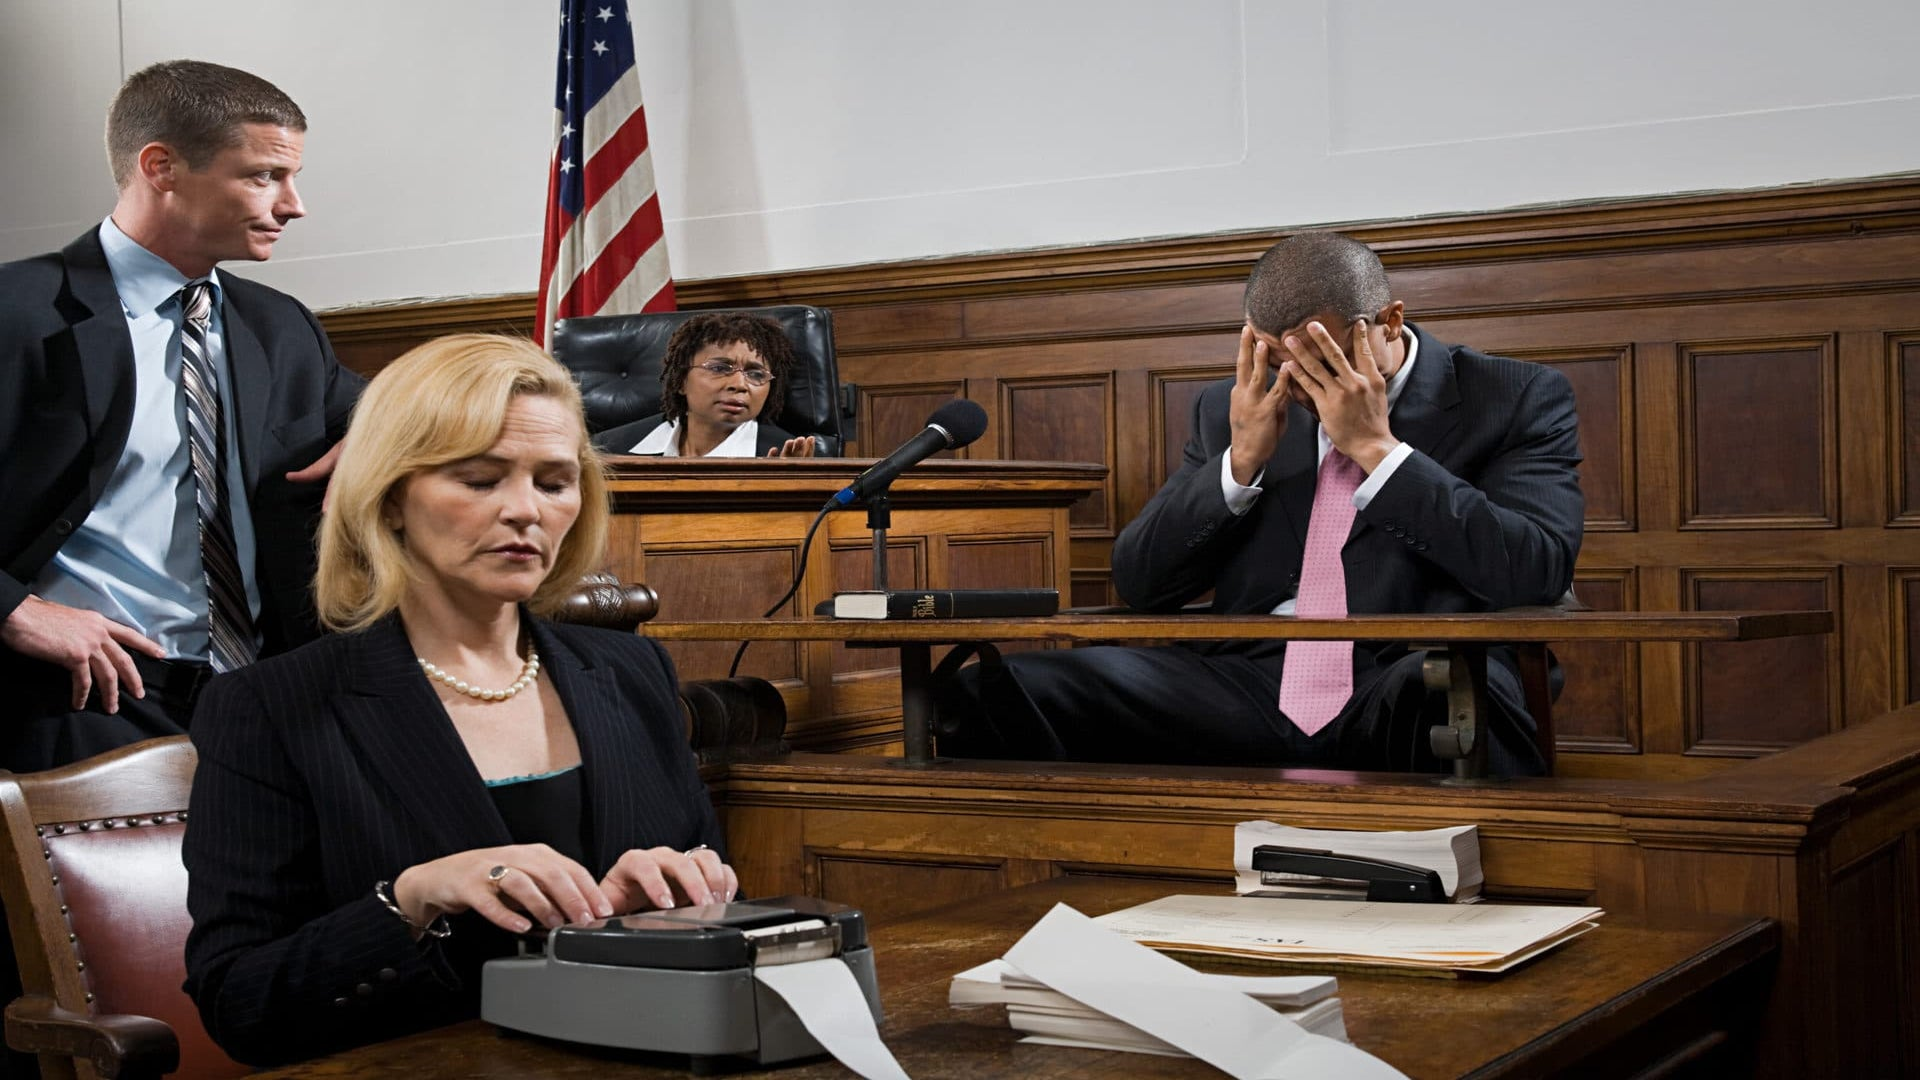 Study Shows How 'Talking Black' Can Hurt You In Court